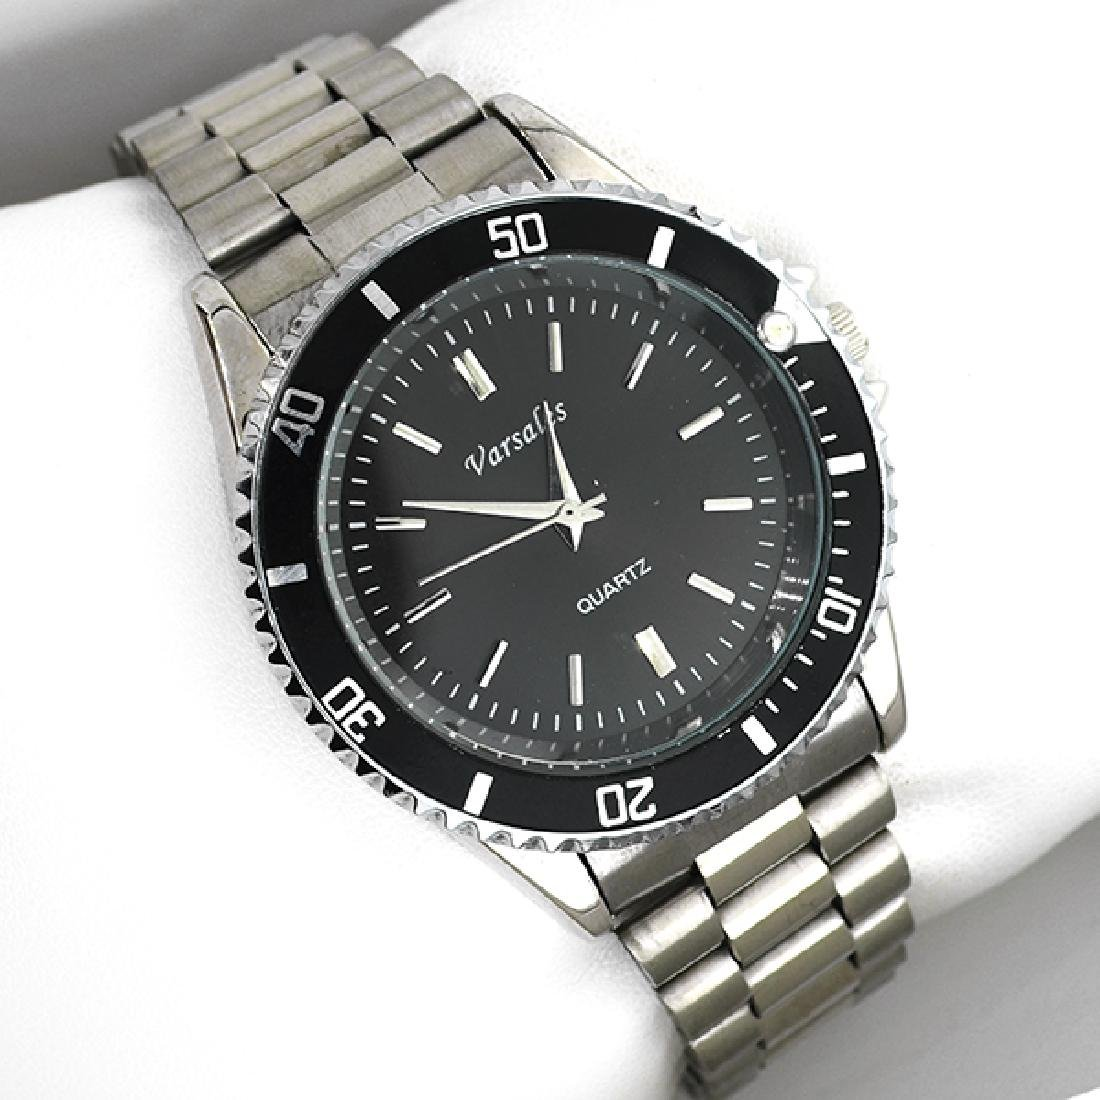 Varsales Men's Stainless Steel Silver and Black Watch